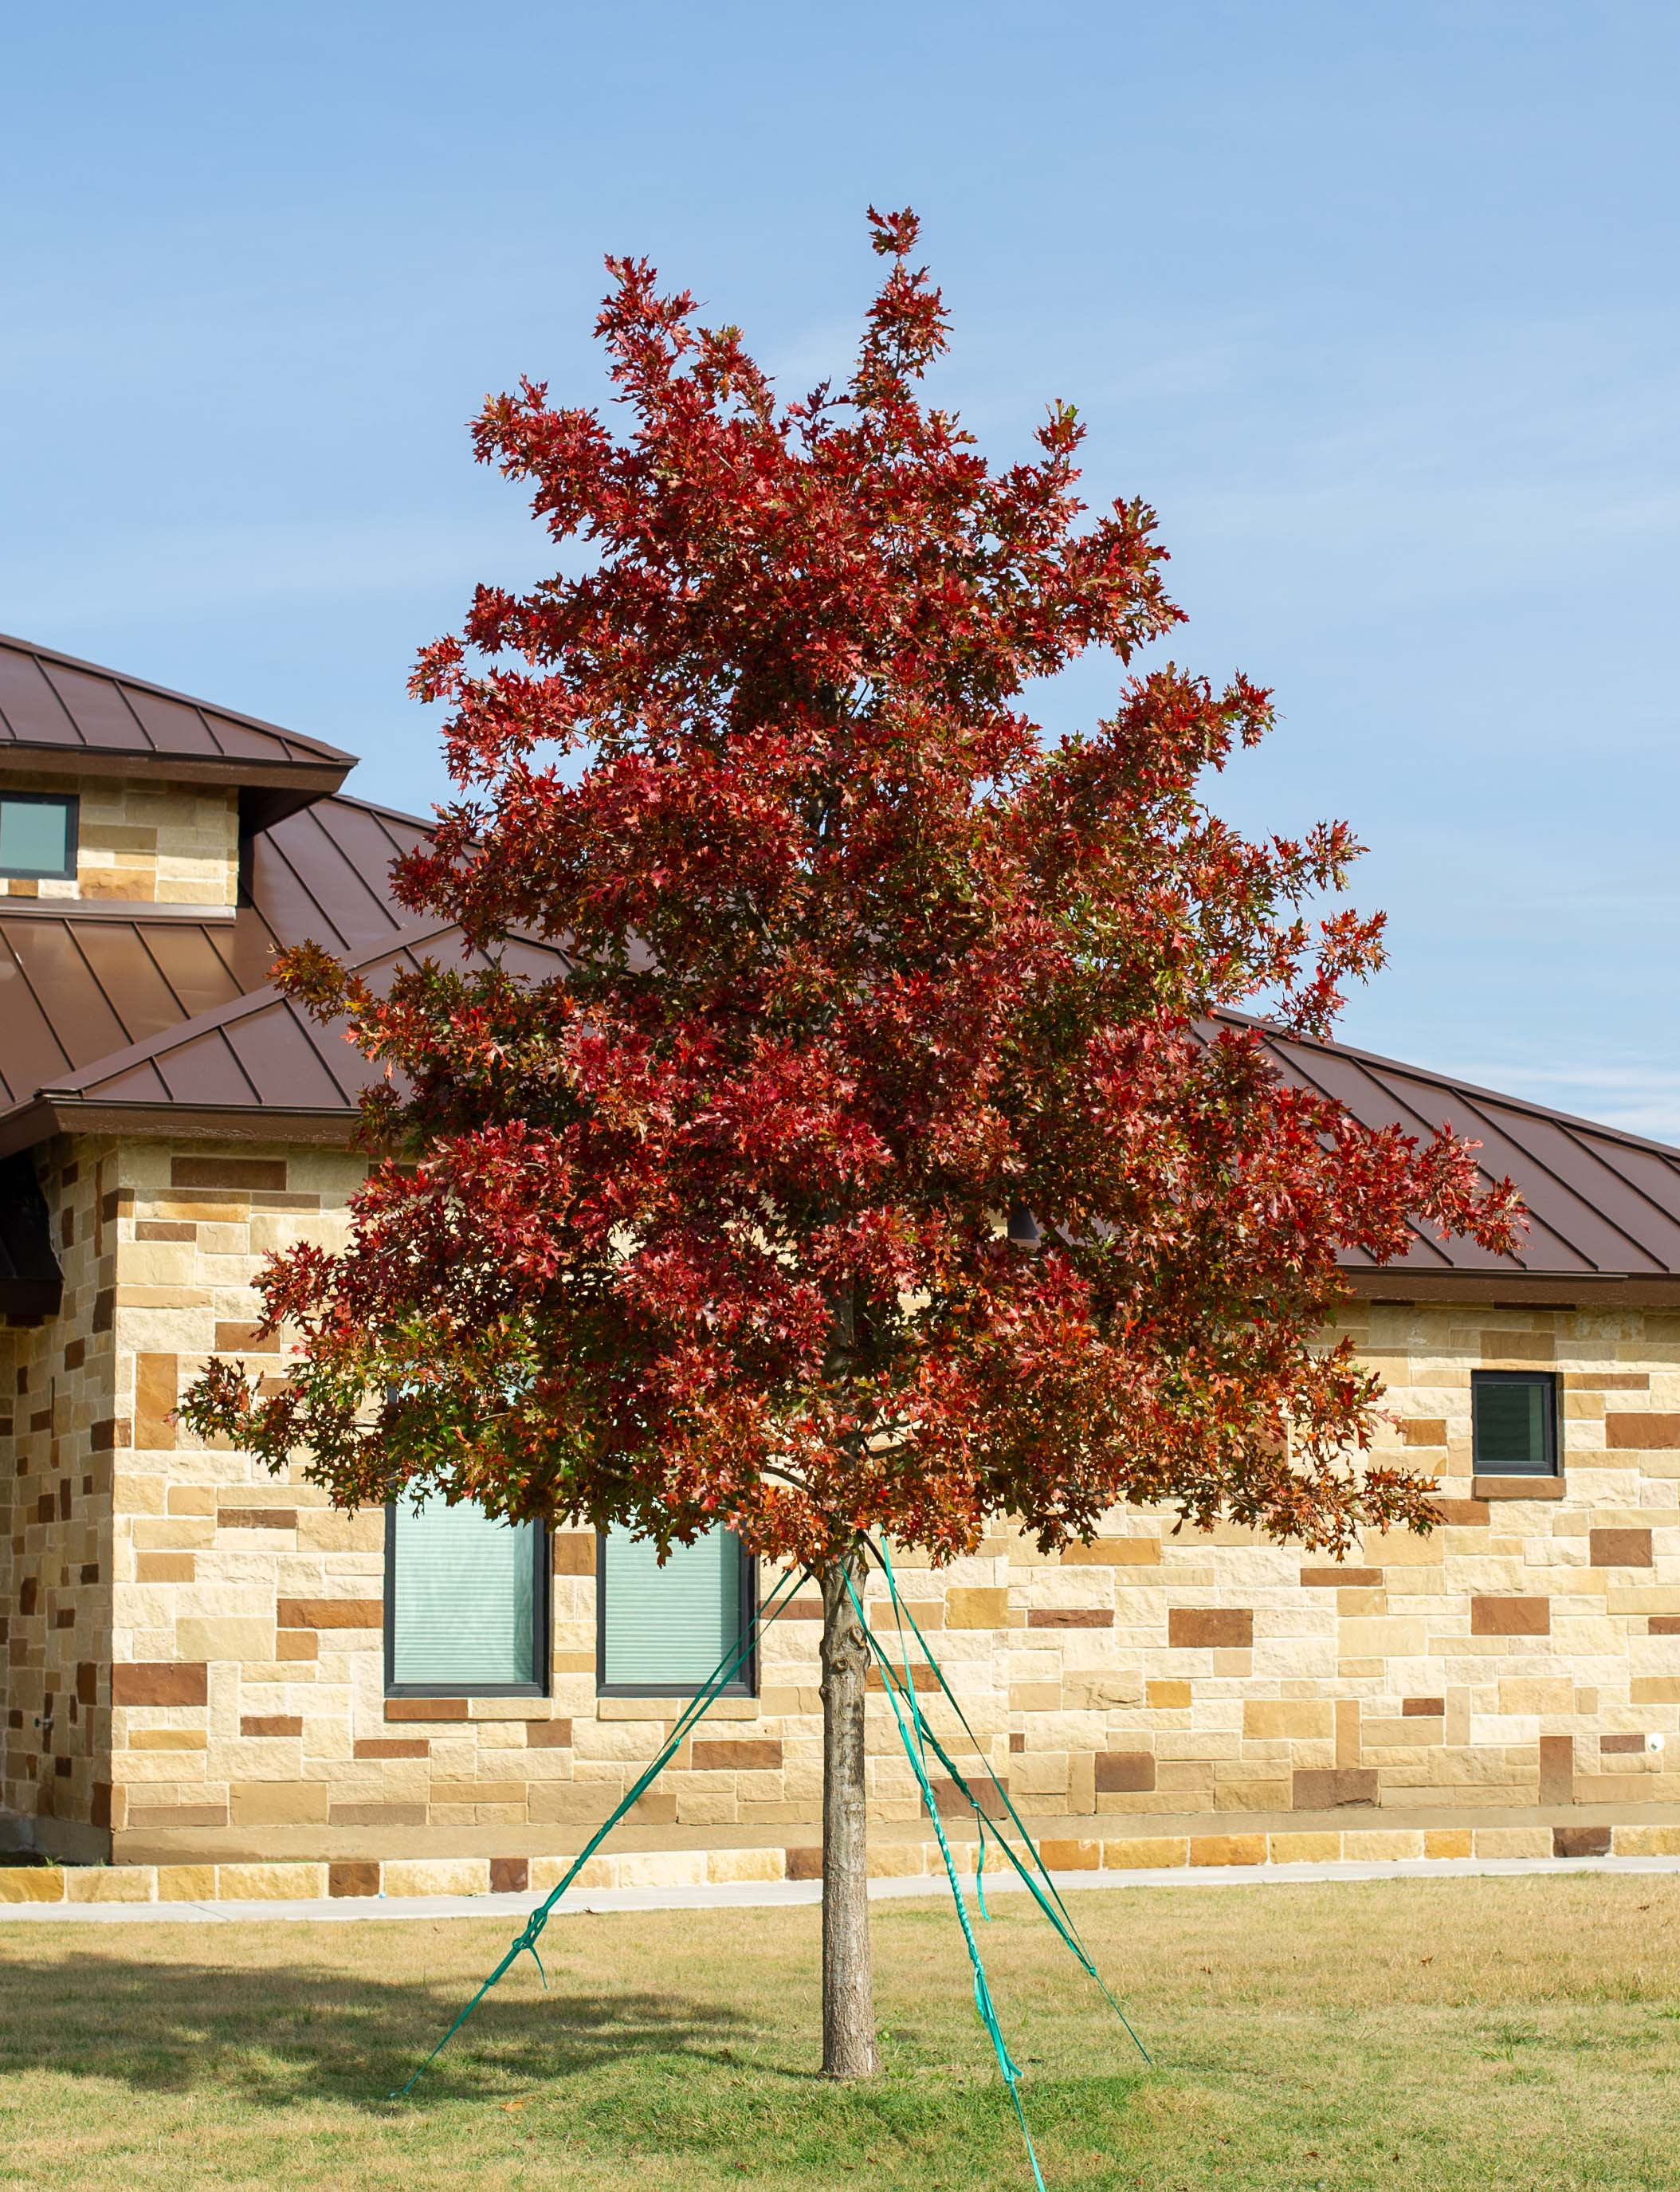 Red Oak tree with Fall Foliage.